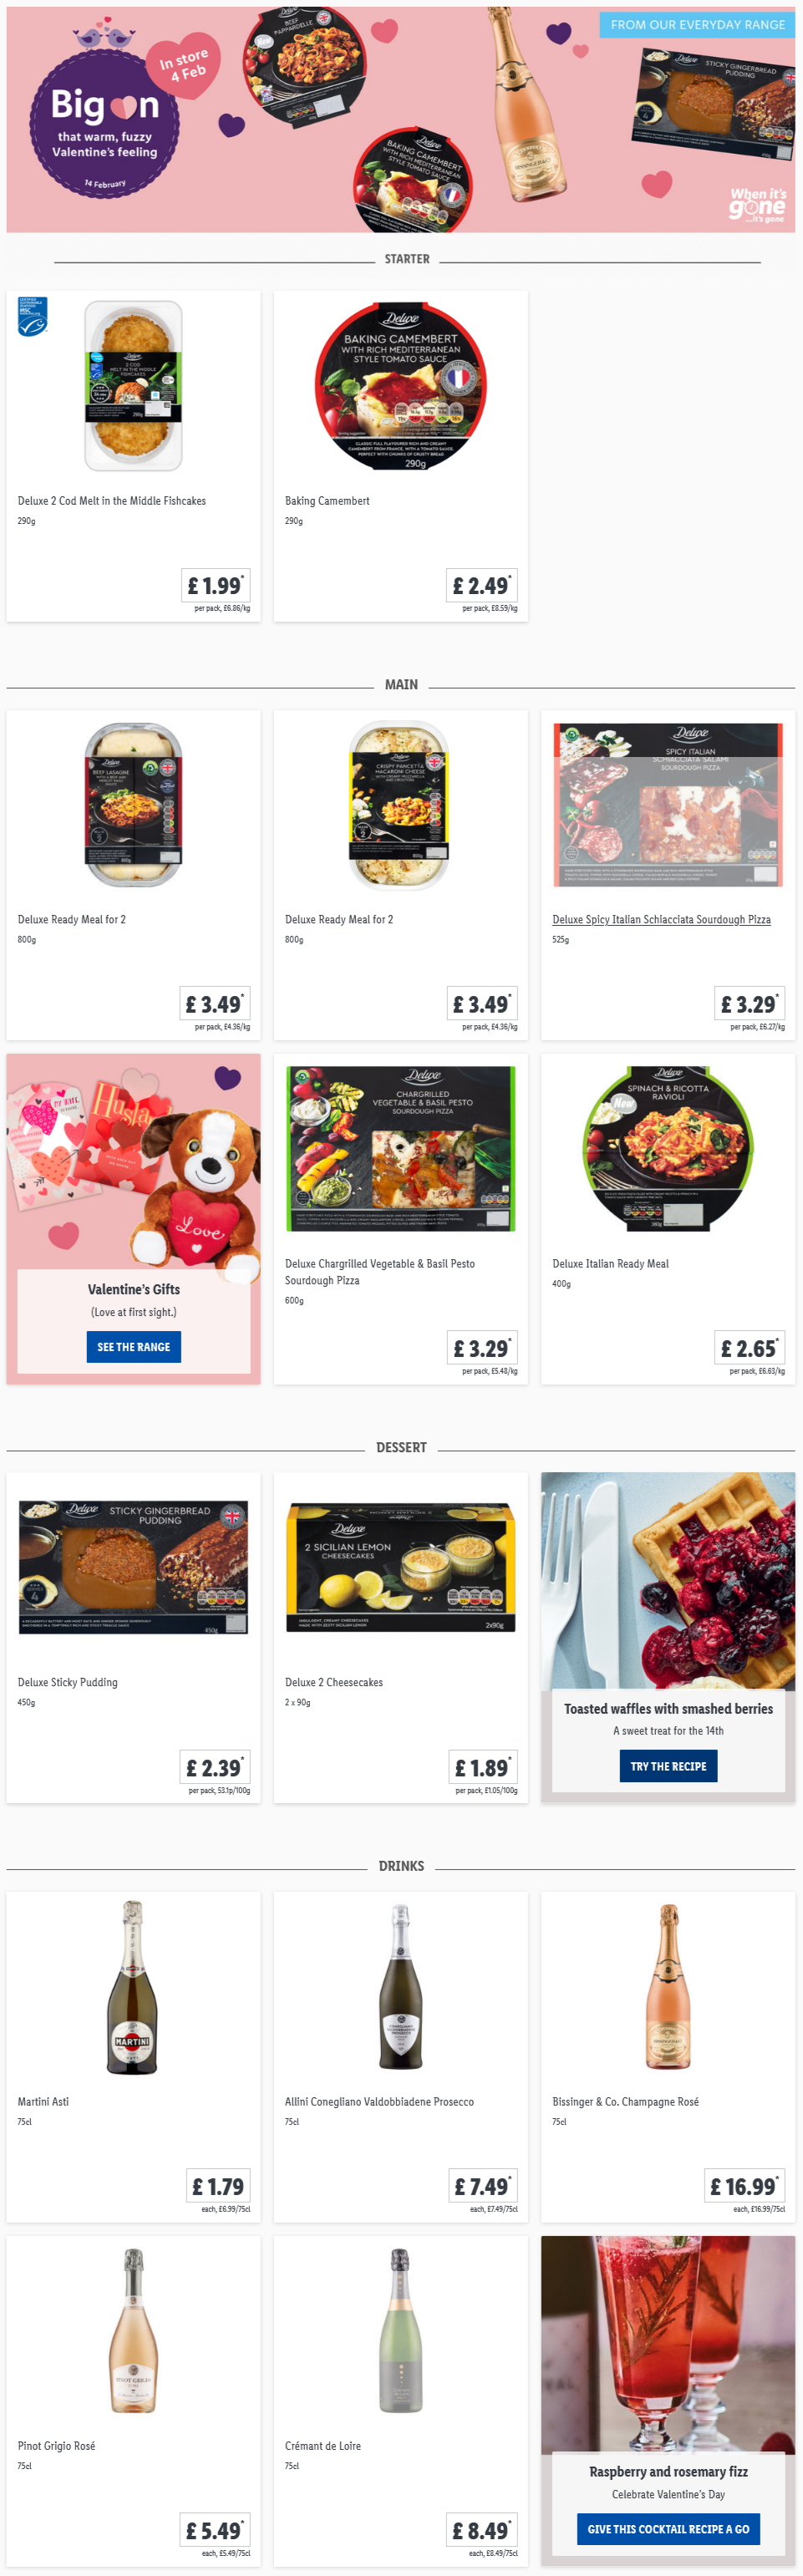 LiDL Valentine's Day Food From 4th February 2021 LIDL Offers this Thursday